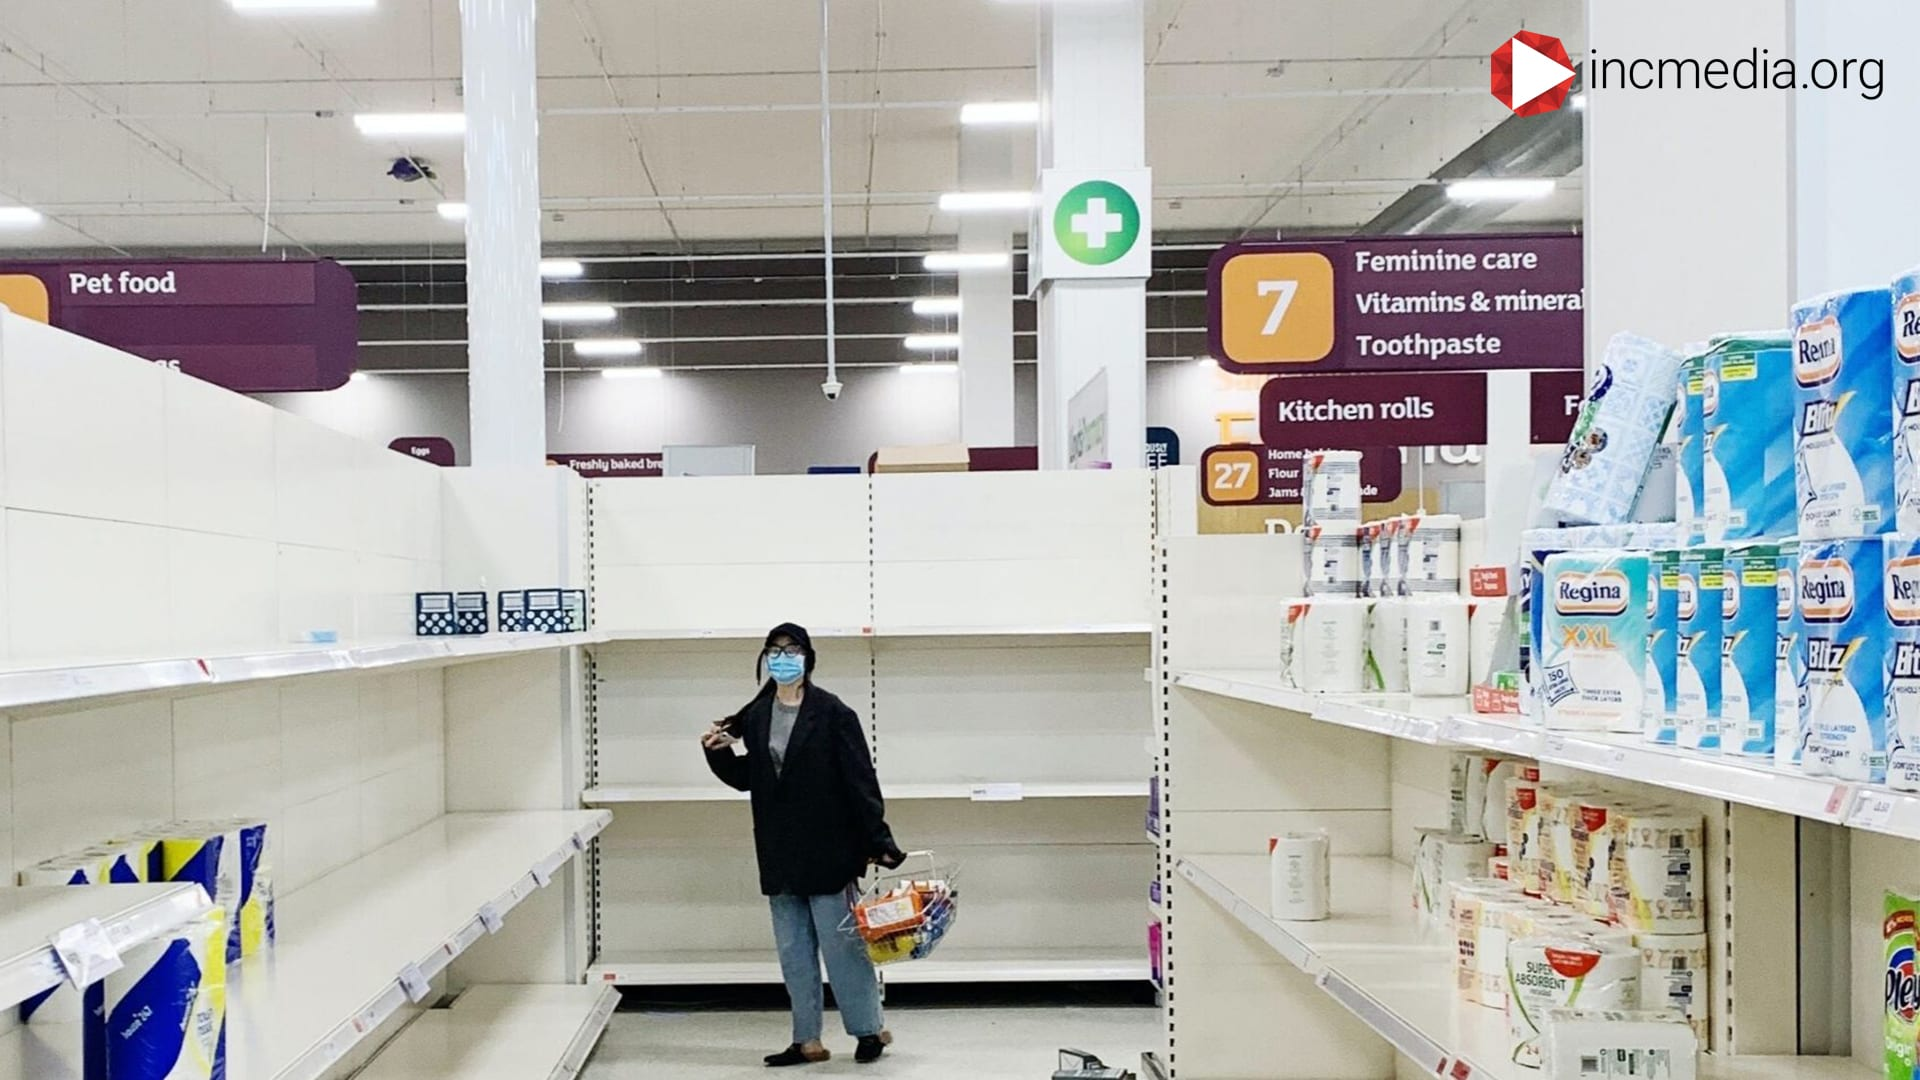 Lady in empty store aisle during cover.